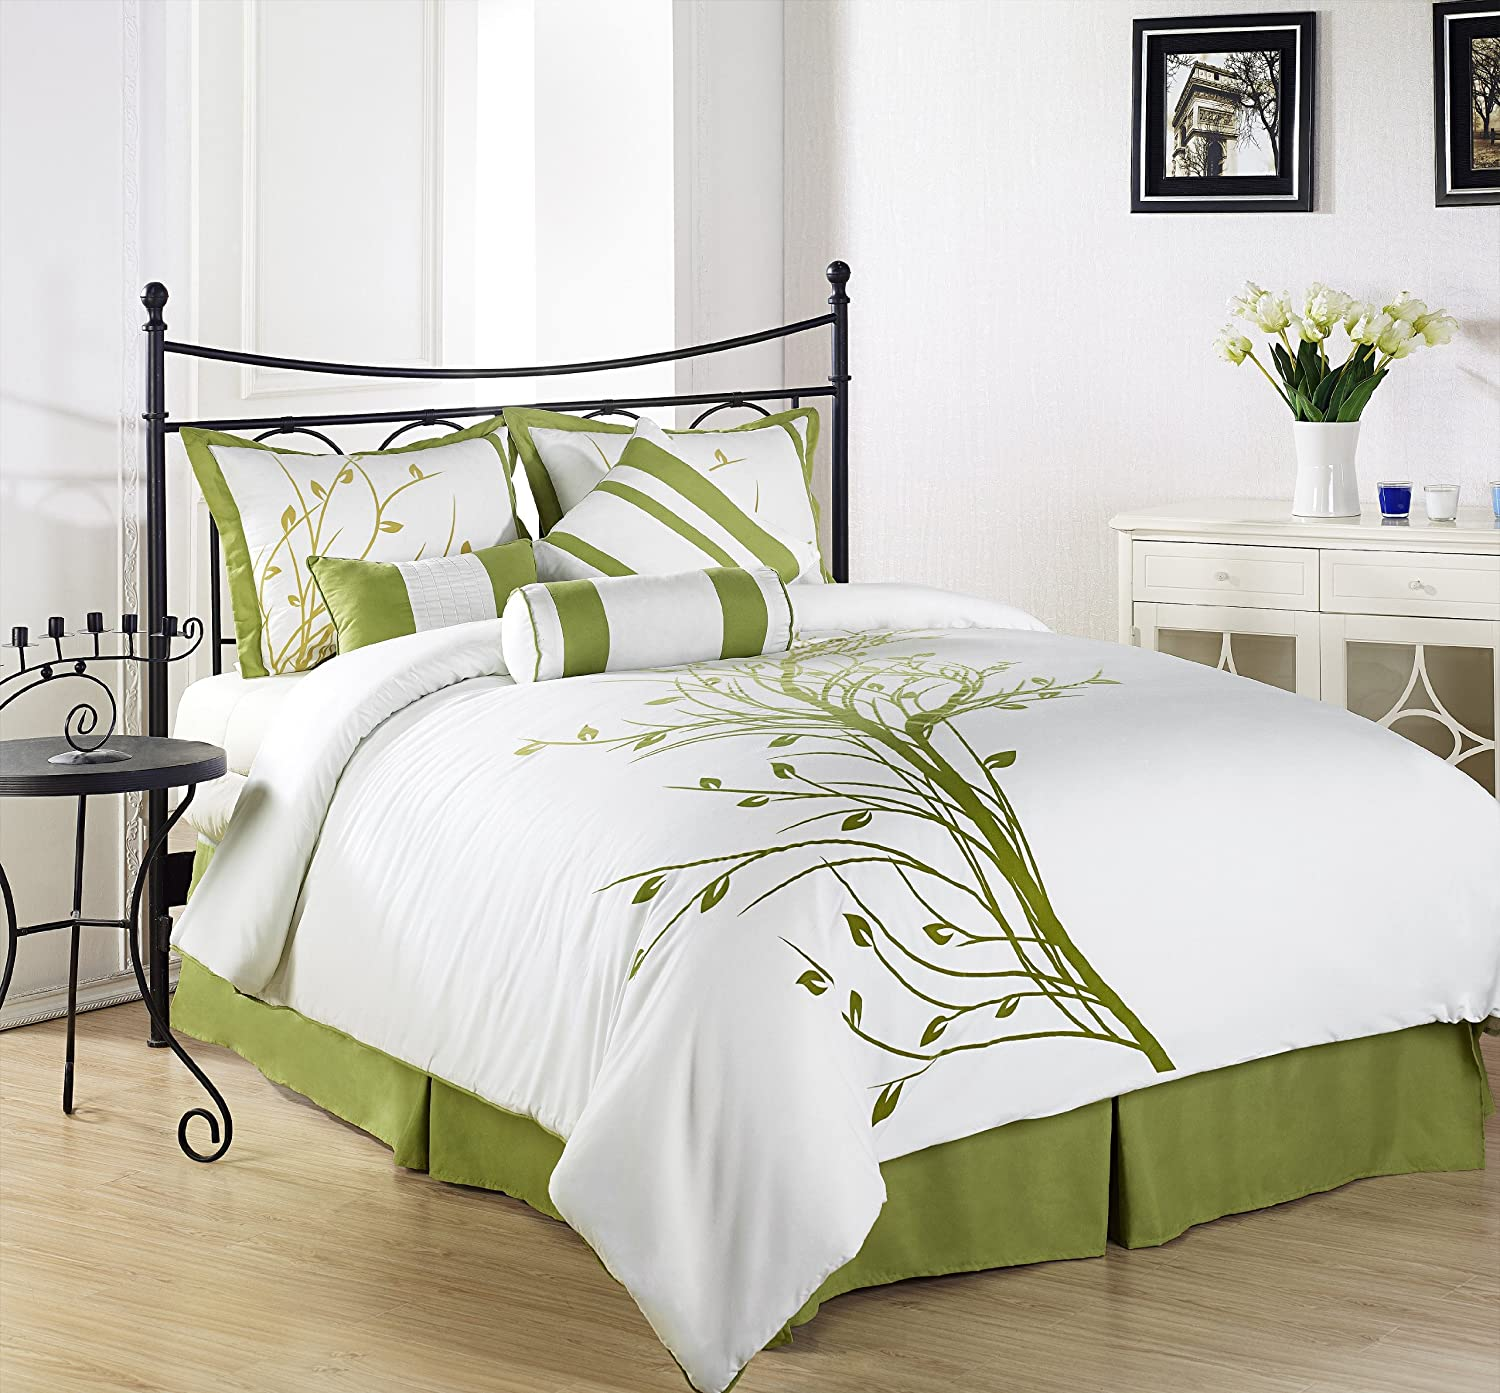 Green bedding and bedroom decor ideas for White queen bedroom set